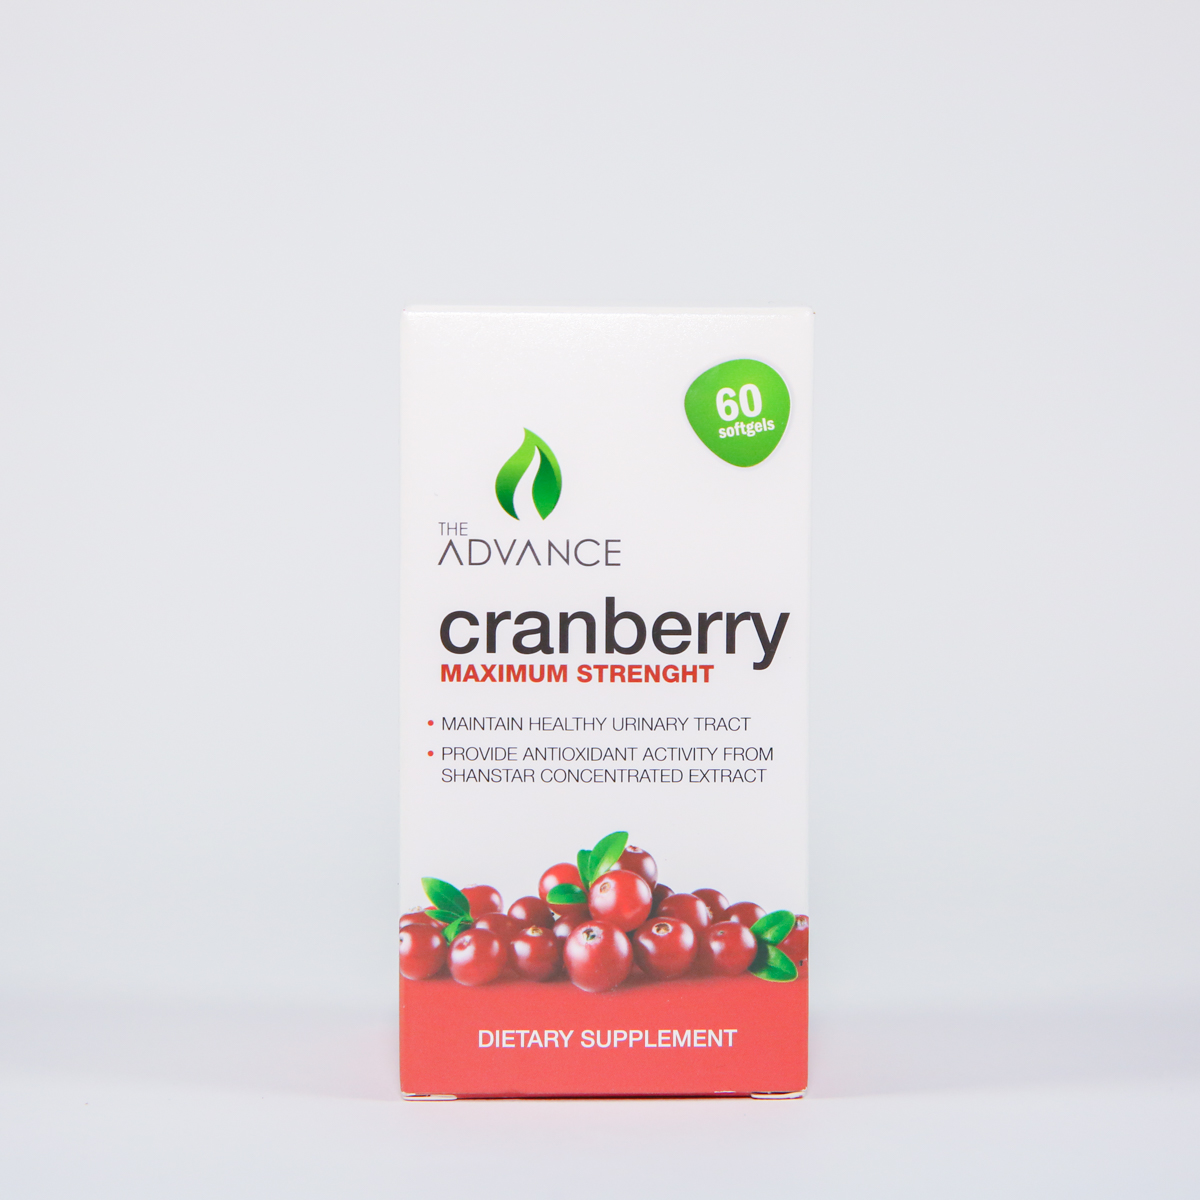 CRANBERRY MAXIMUM STRENGTH